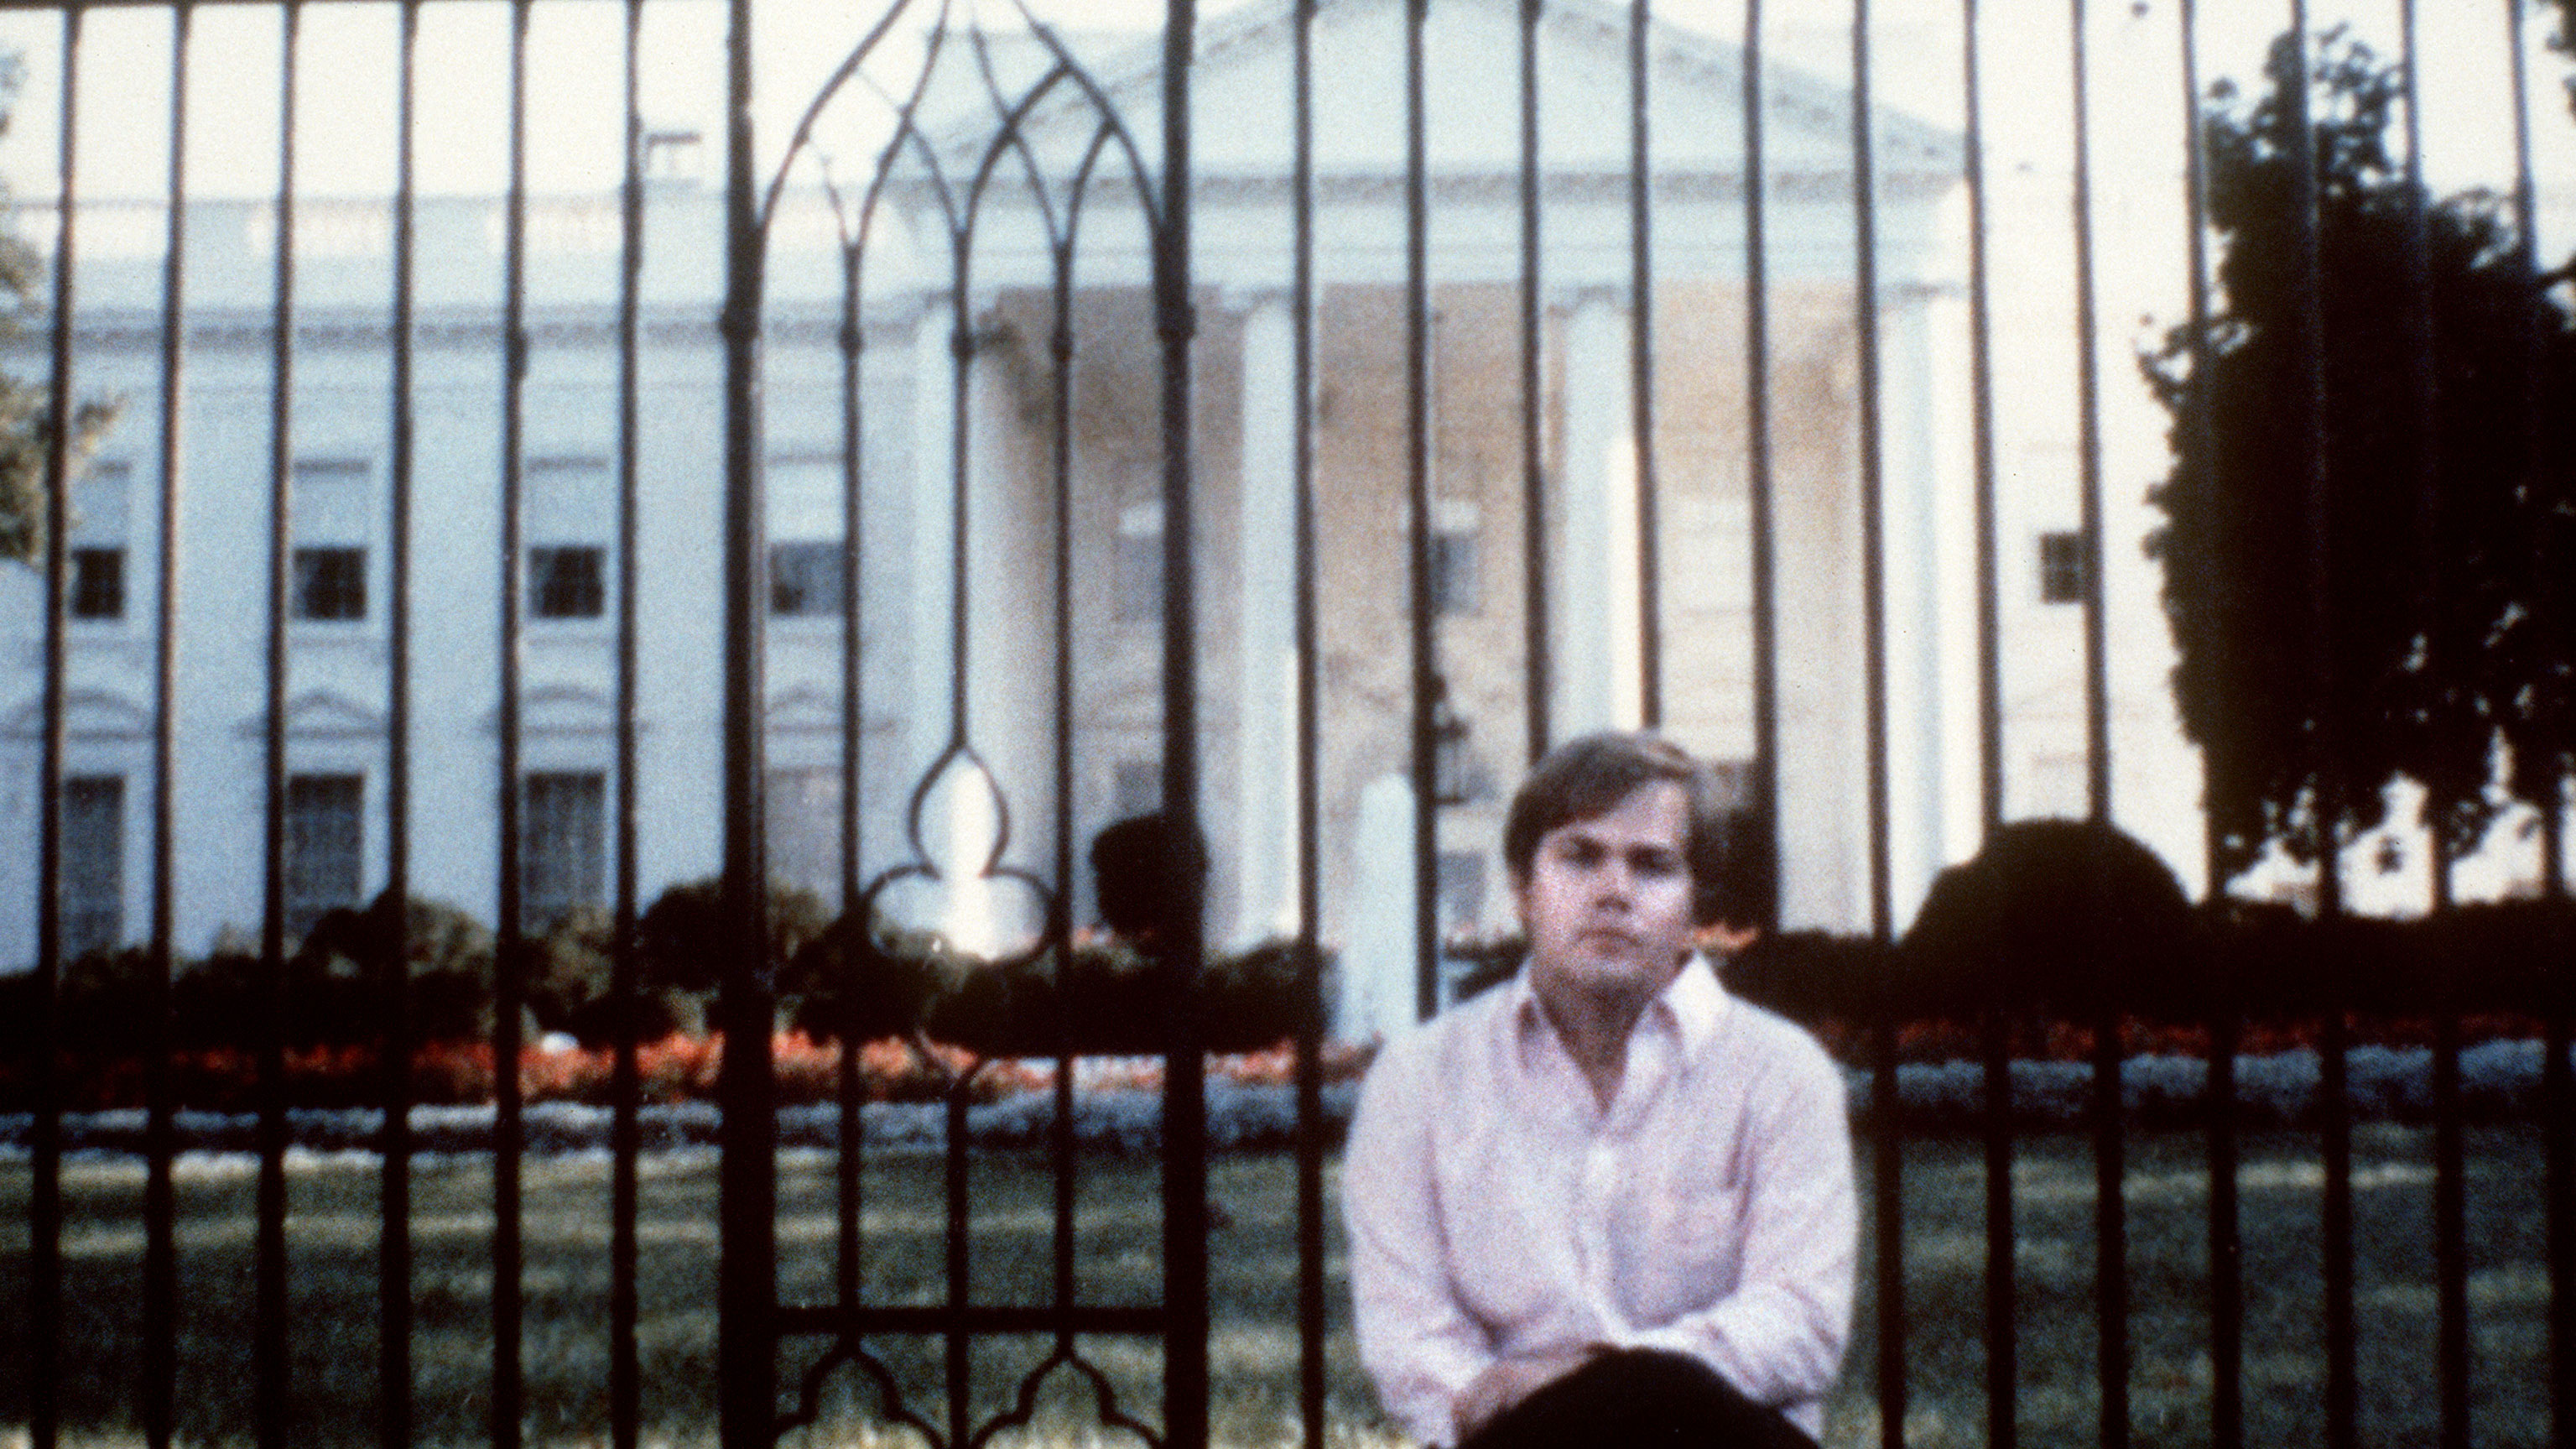 John Hinckley, Jr. Tried to Assassinate Ronald Reagan Because He was Obsessed with Jodie Foster